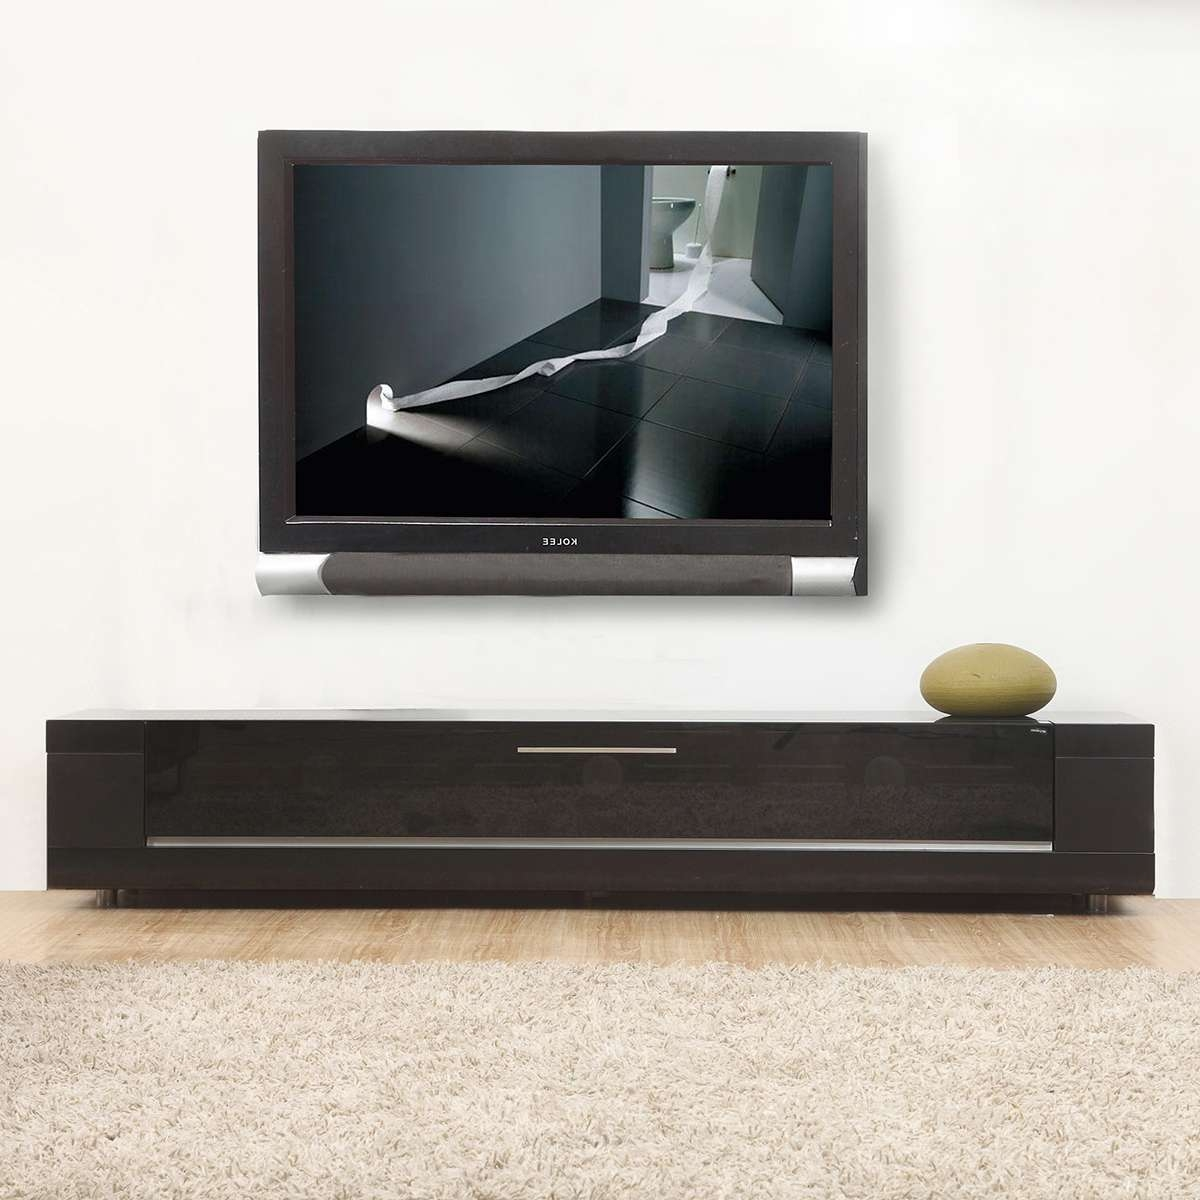 Tv Television Stands 71 & Wider At Dynamic Home Decor With Contemporary Glass Tv Stands (View 5 of 15)